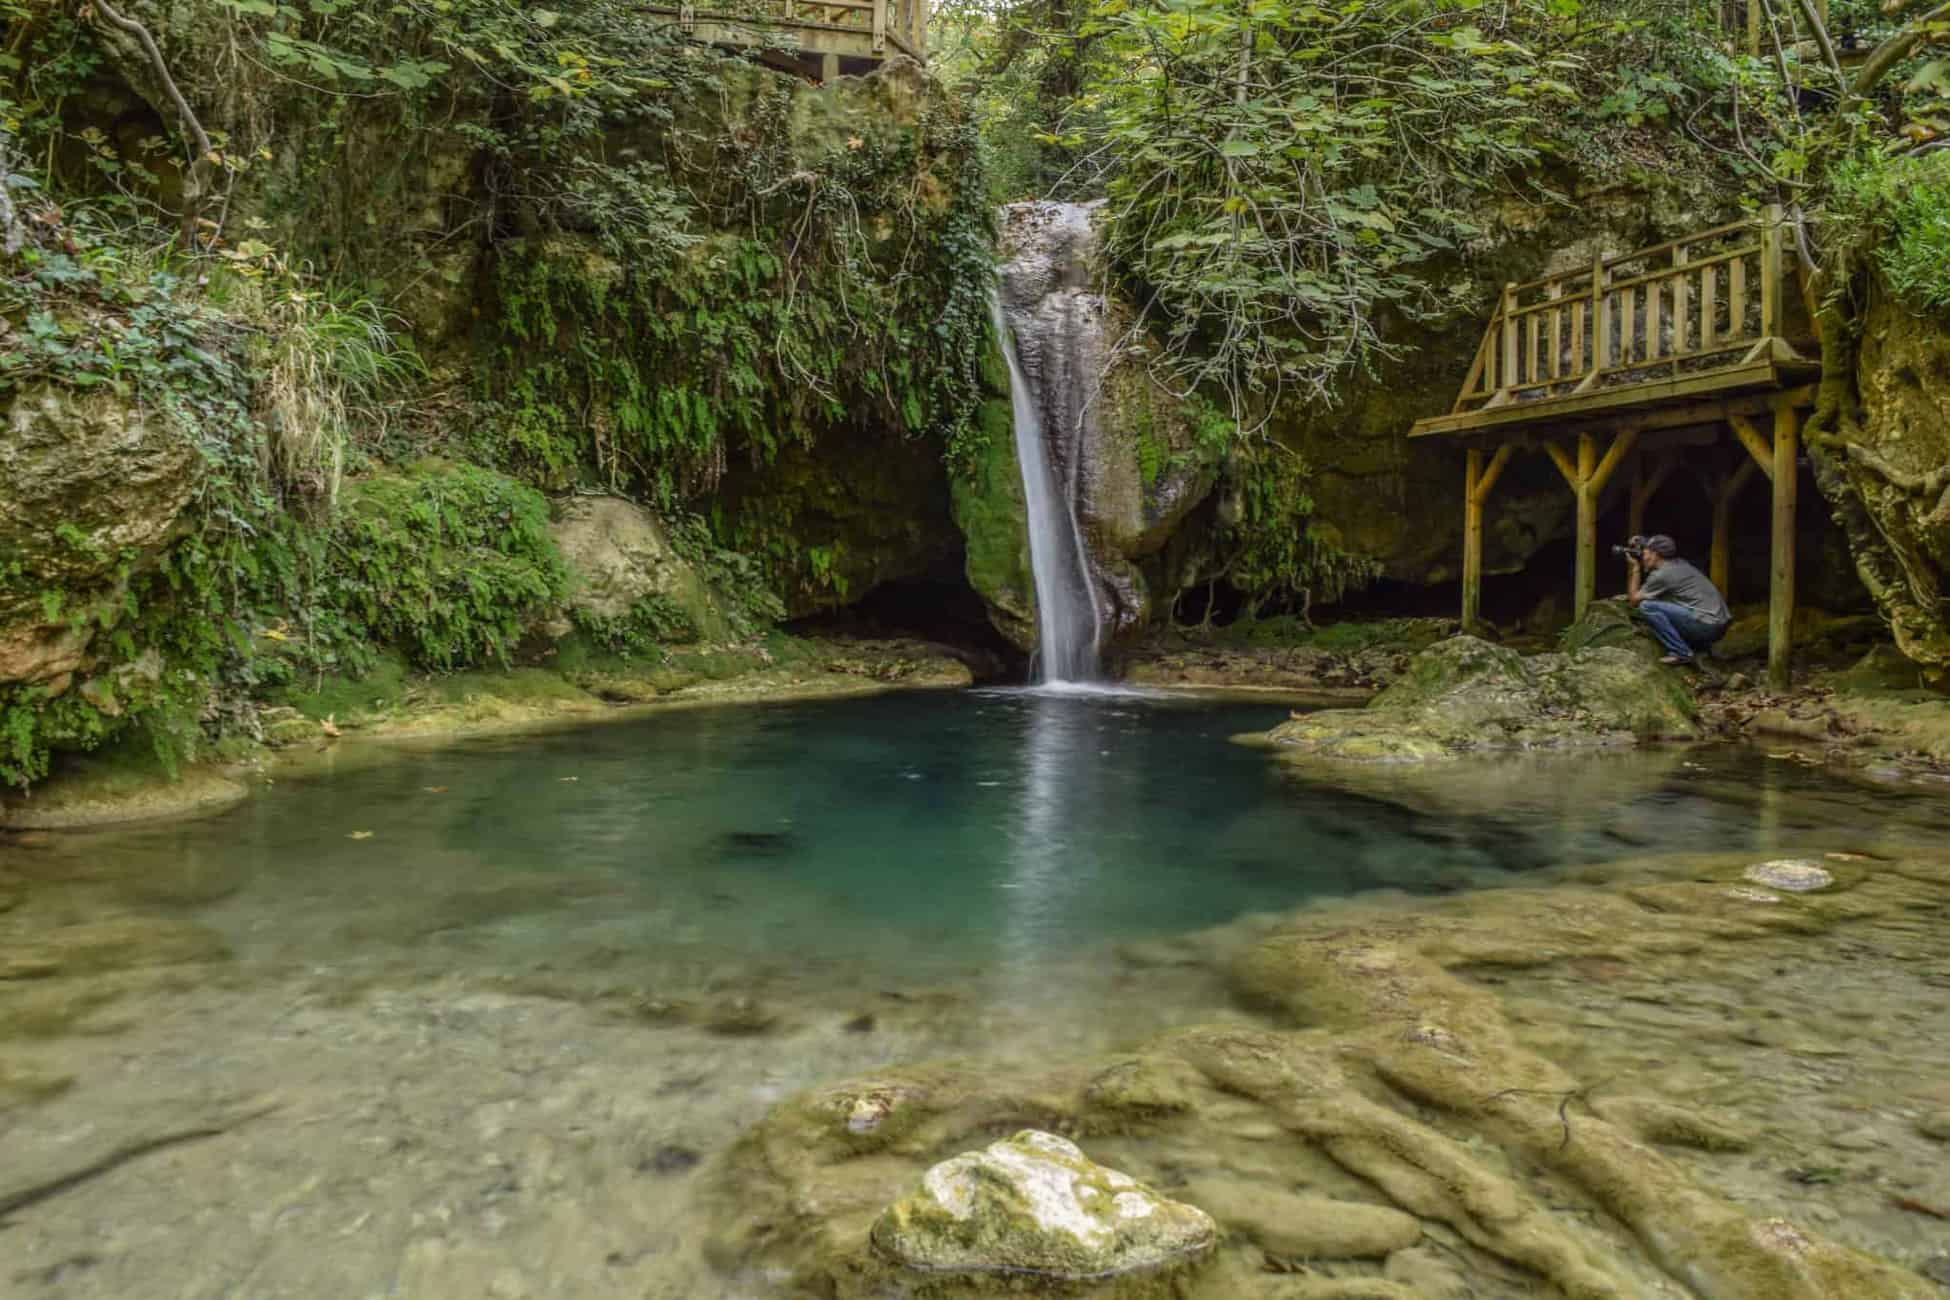 Visit Akyaka and see the Turgot Waterfall nearby